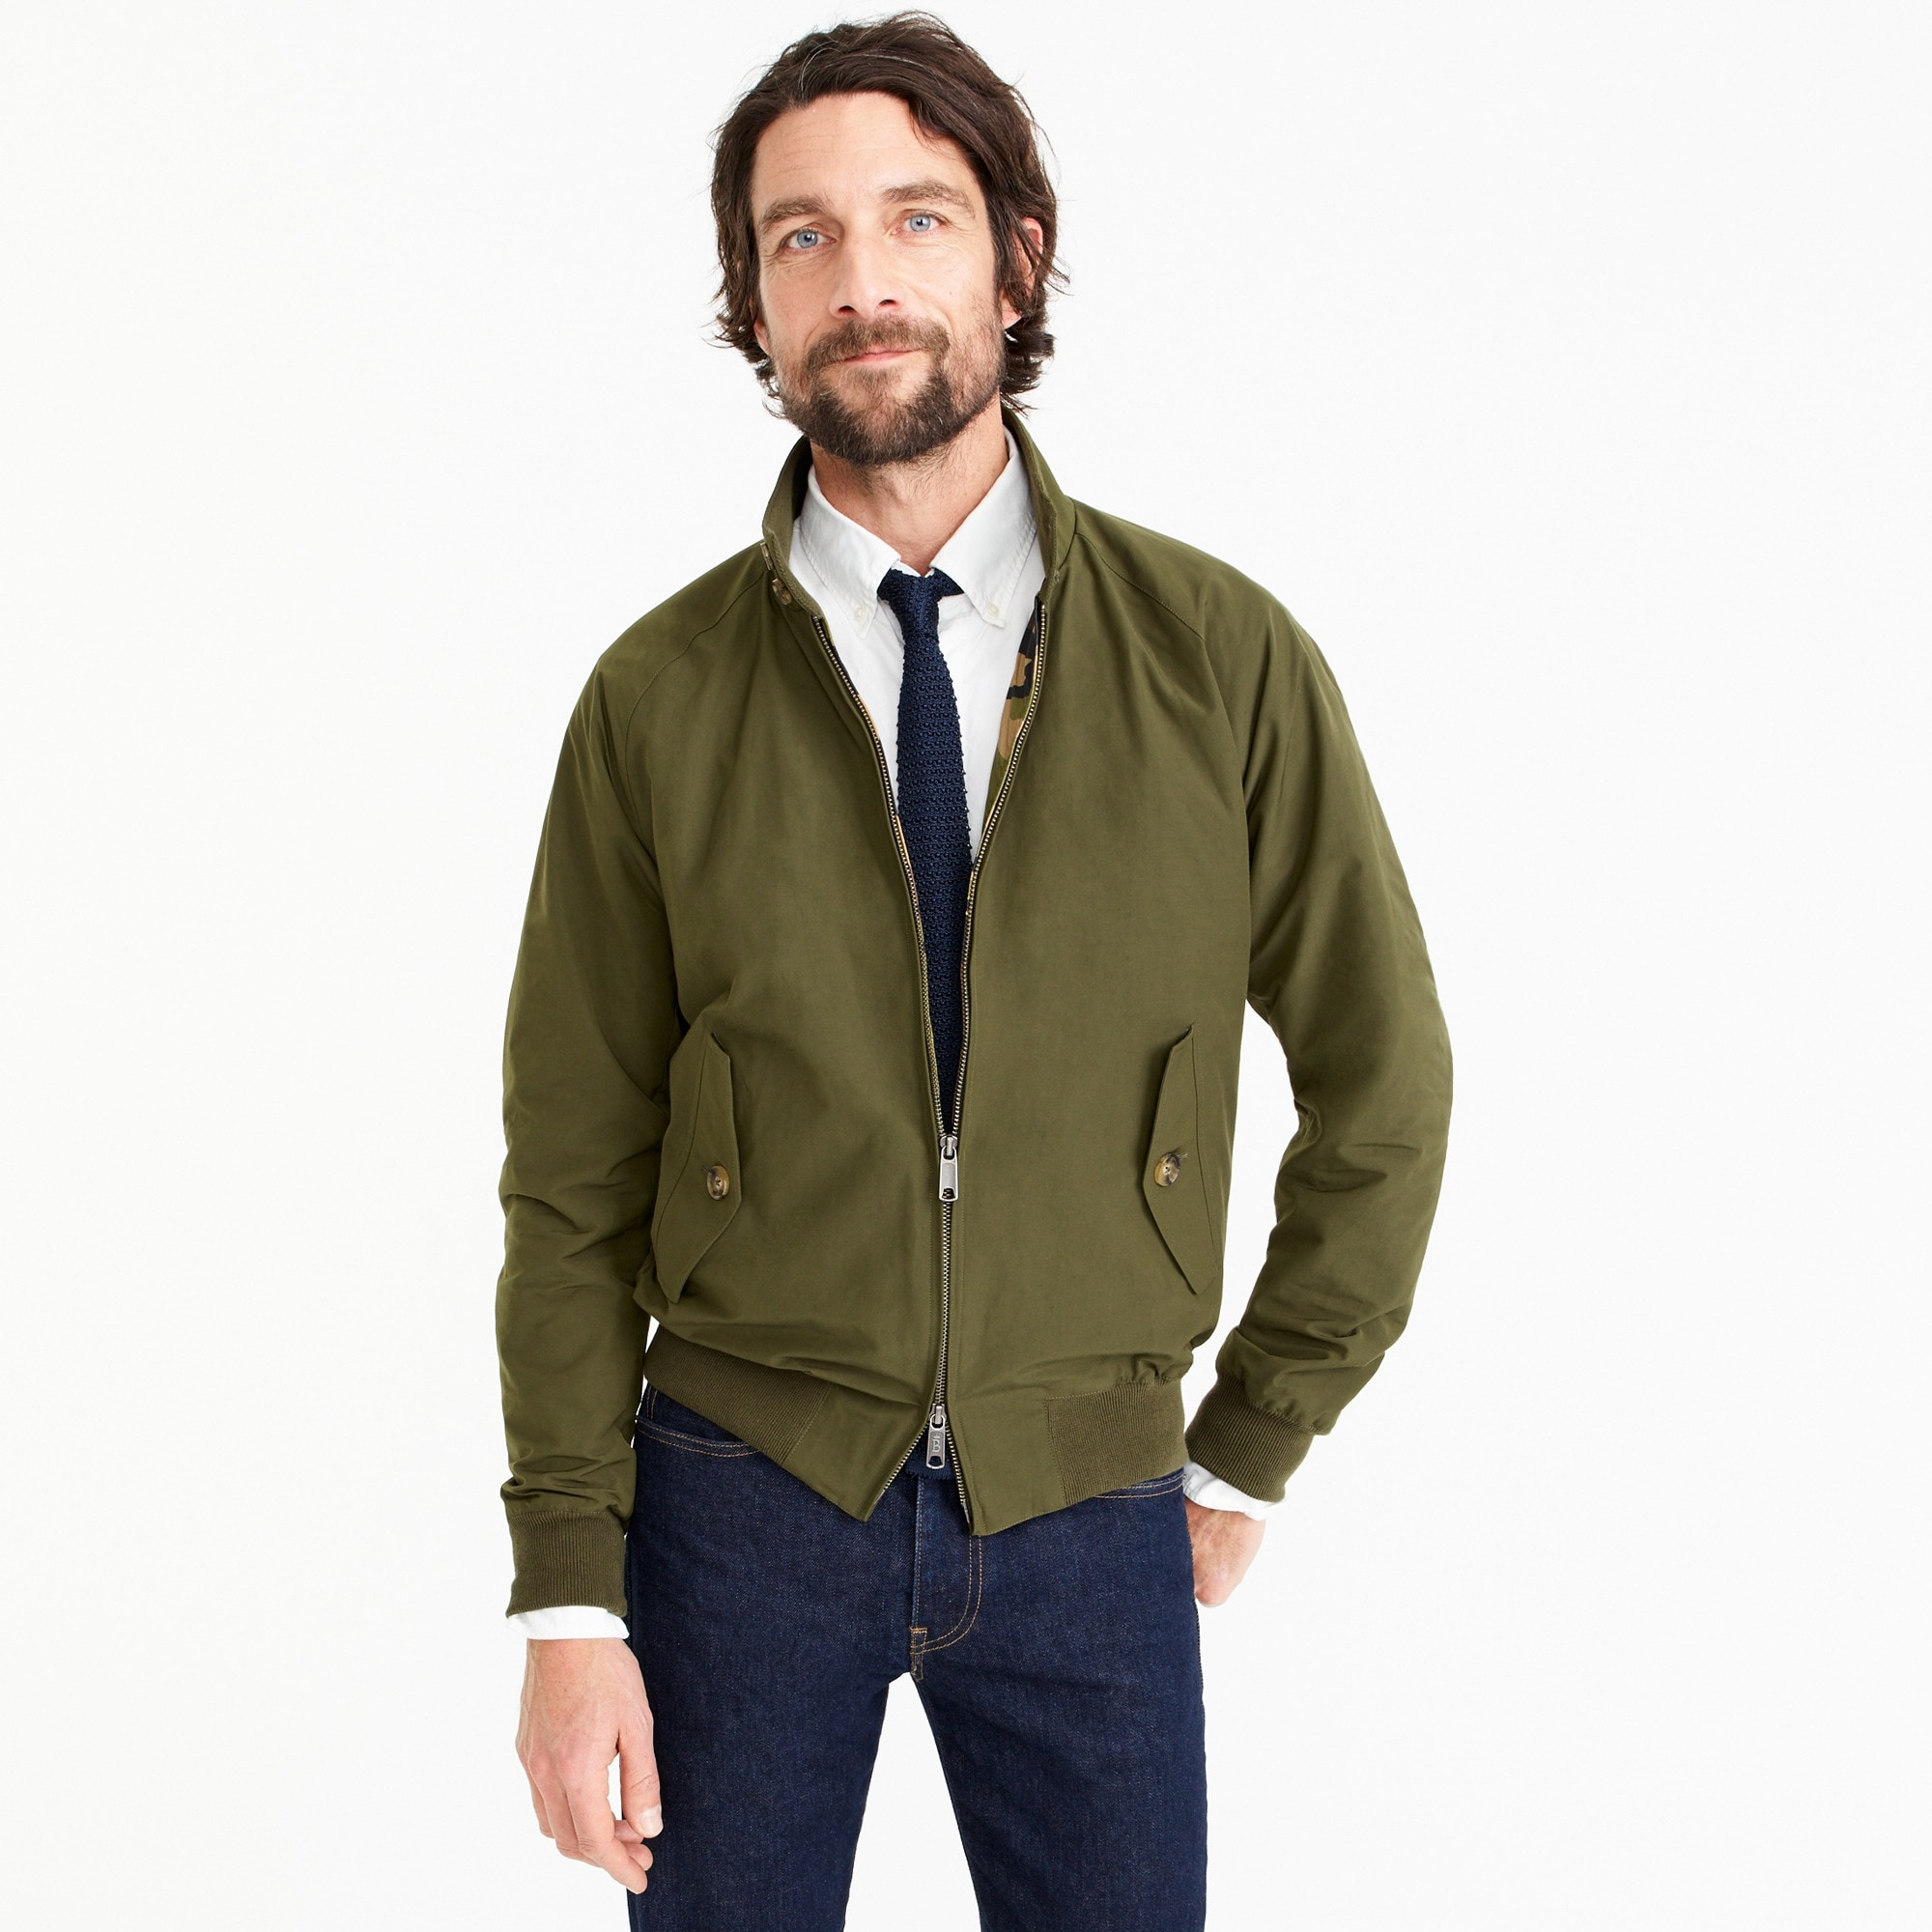 Baracuta® for J.Crew G9 Harrington jacket in olive men coats & jackets c